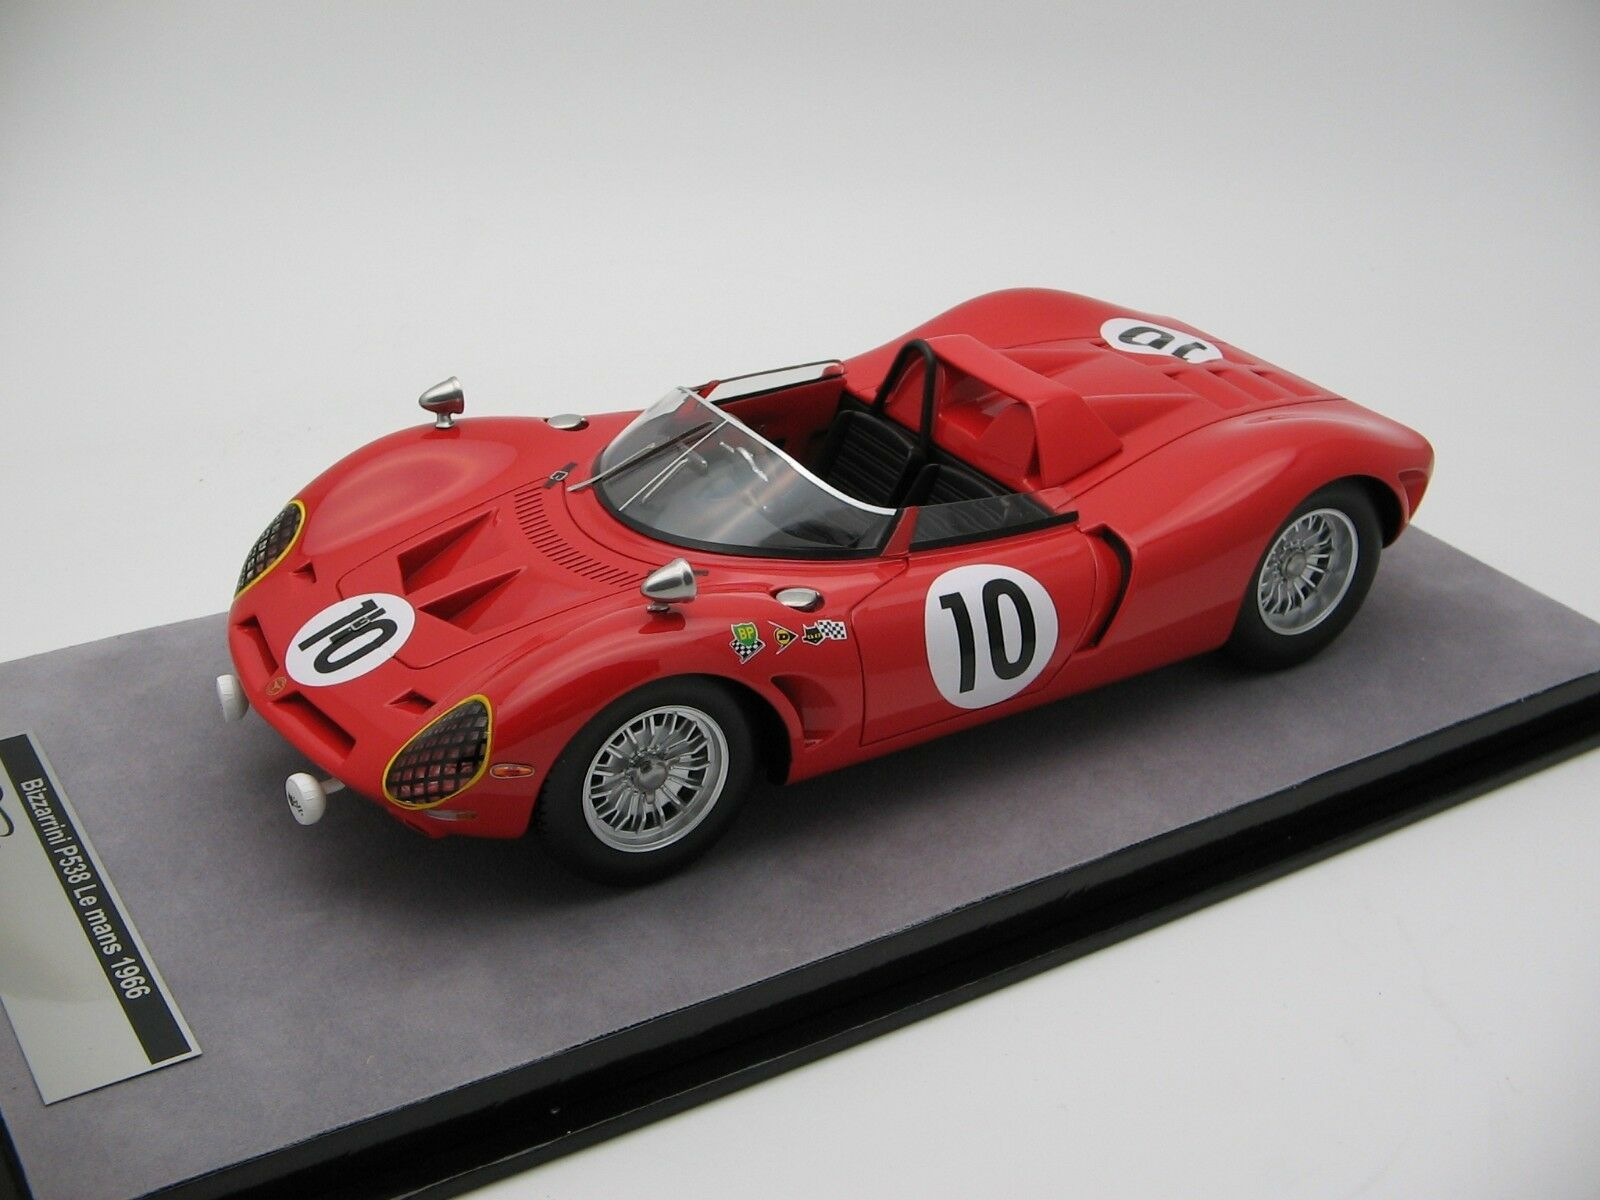 scale Tecnomodel Bizzarrini P538 Le Mans 24h 1966 - TM18-97A